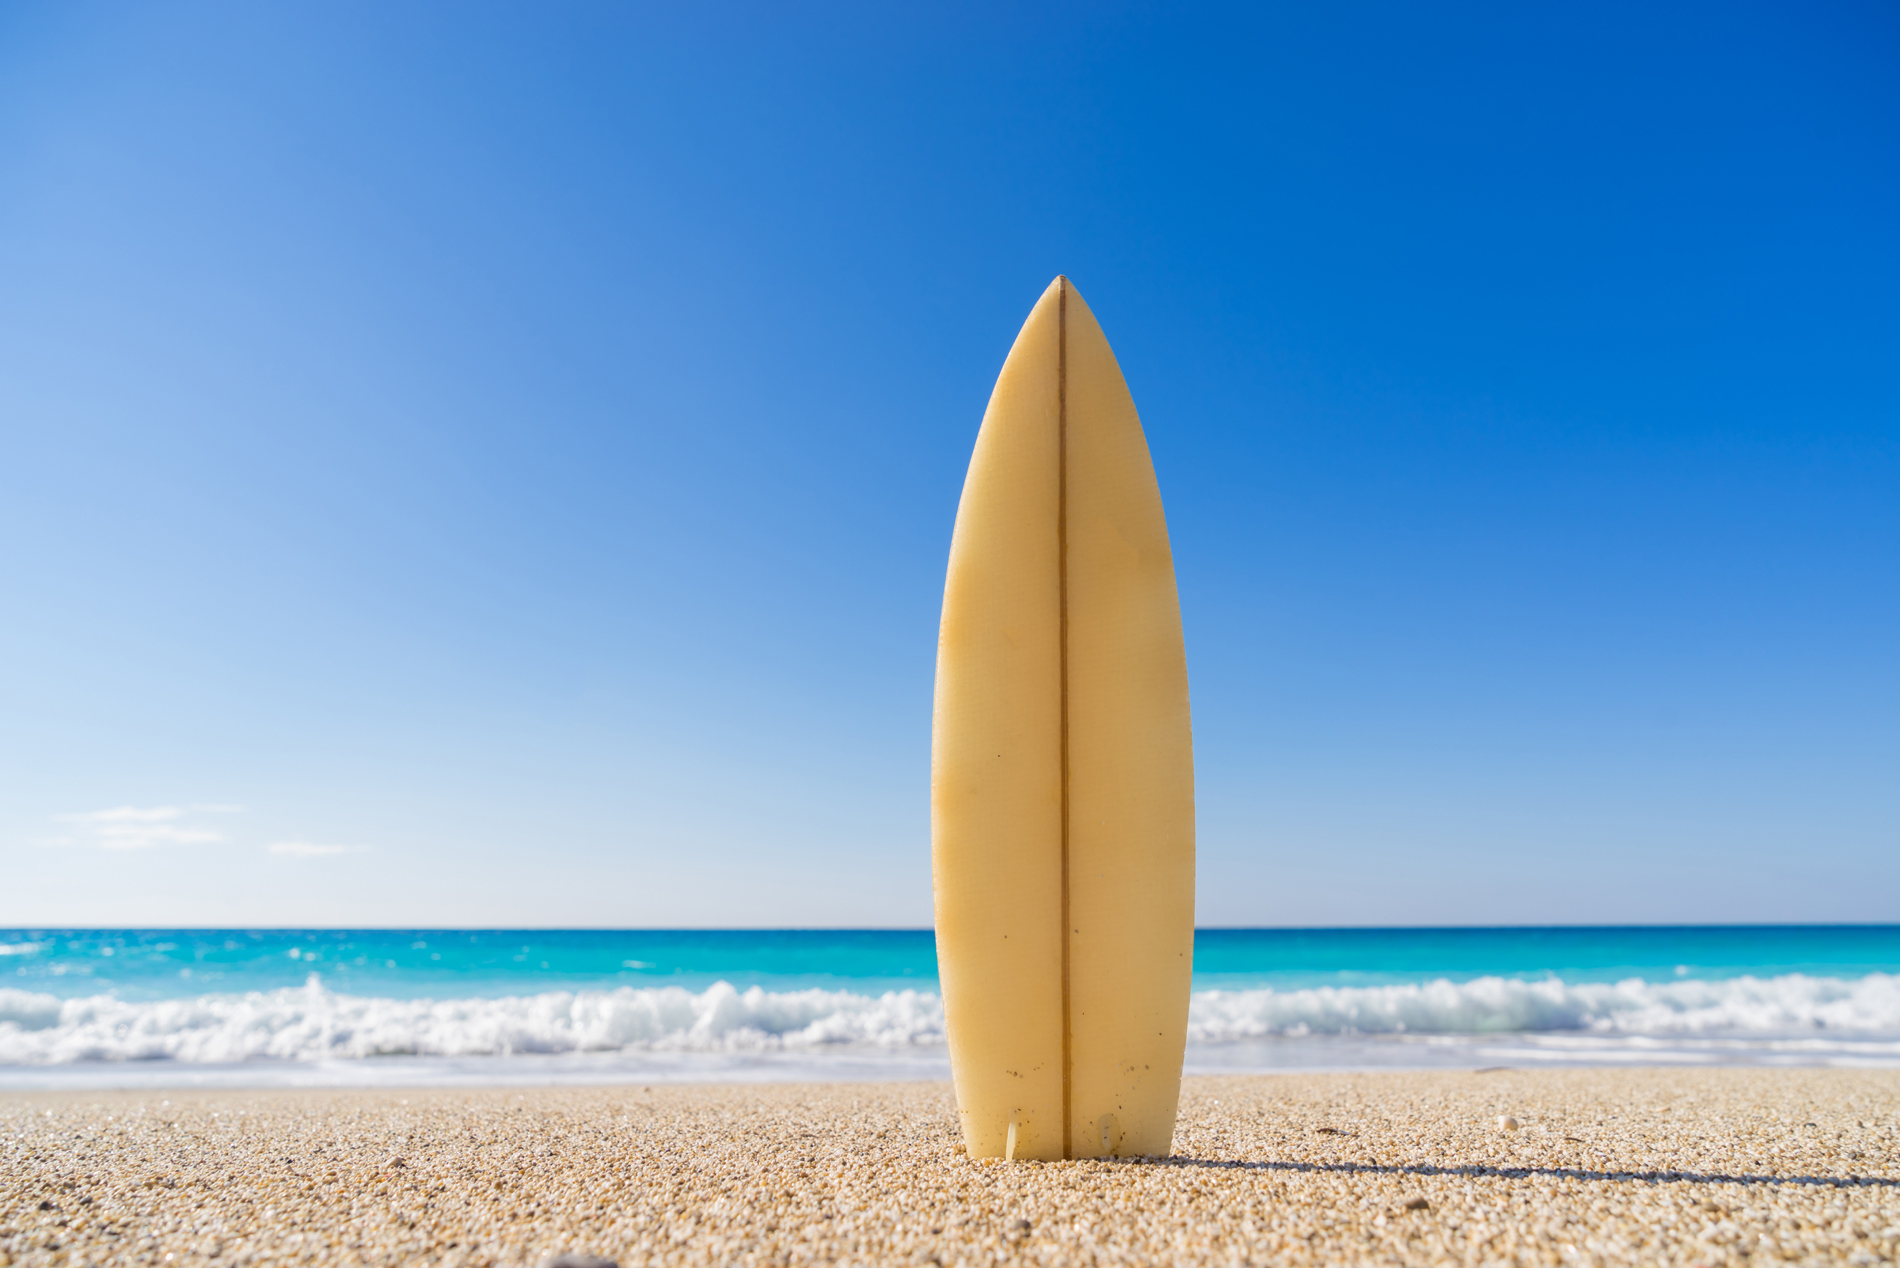 Erected on the beach, surfboard 53163